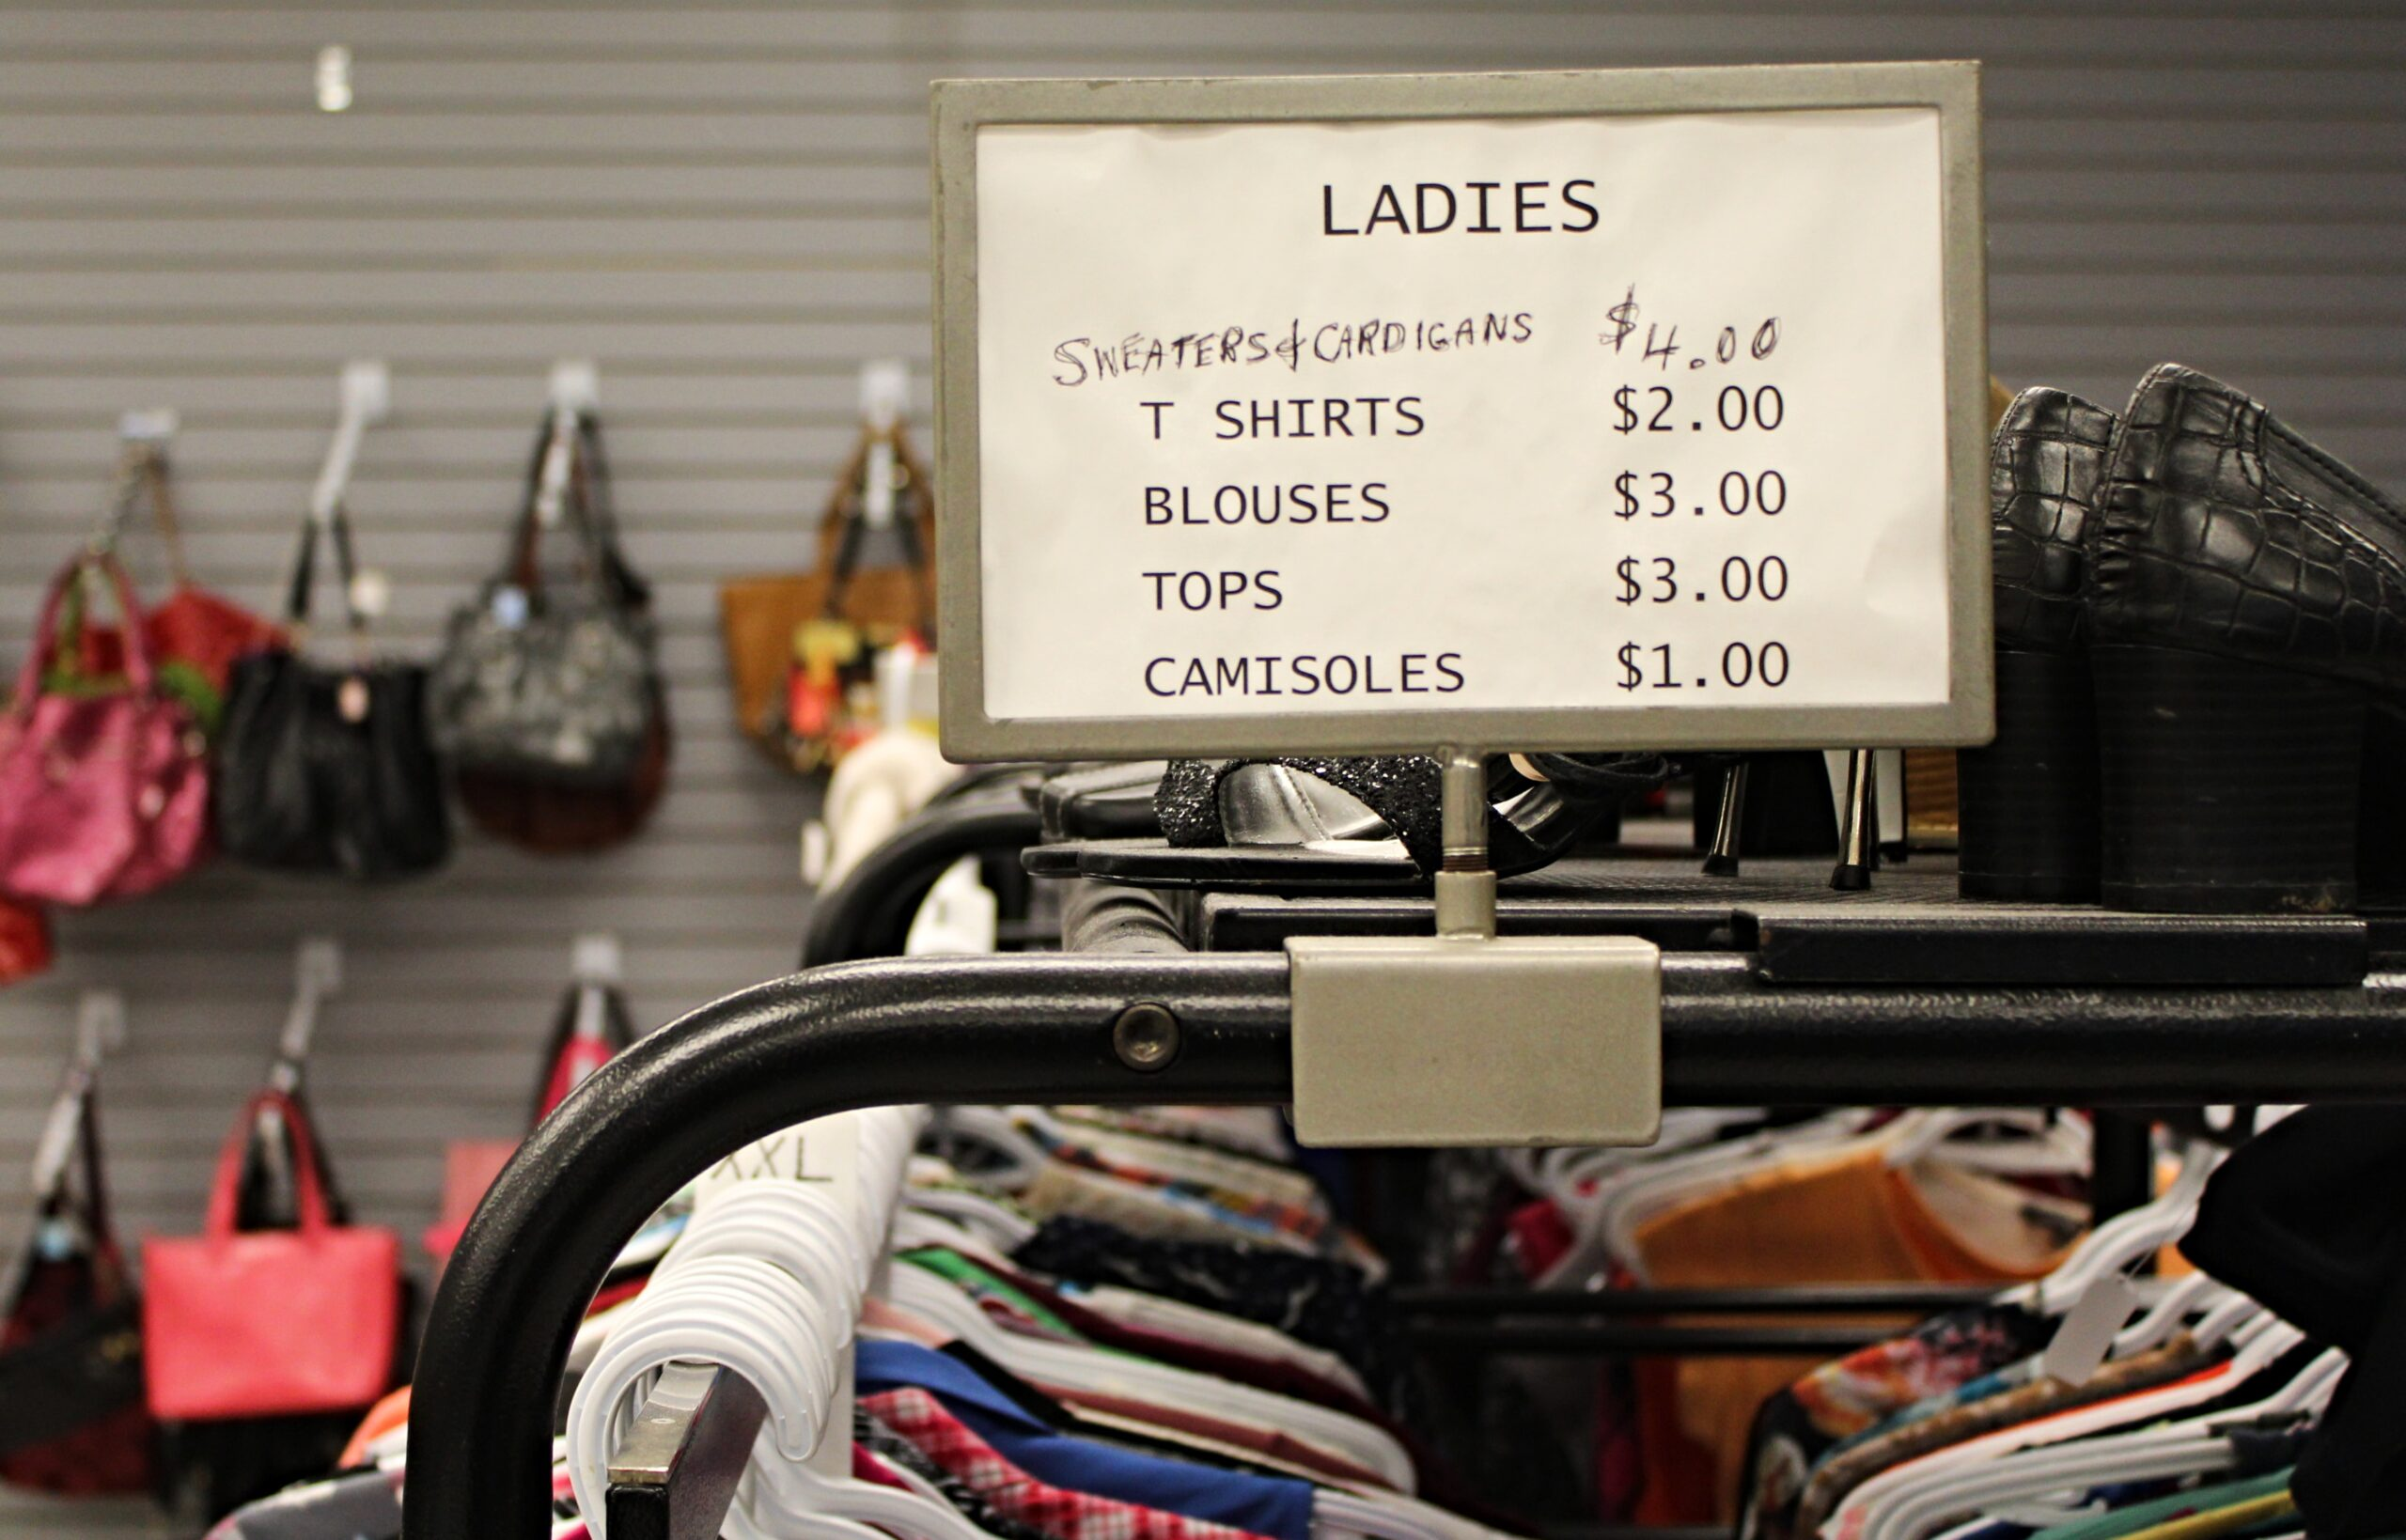 Signage at thrift store shows shirts priced as low as $1